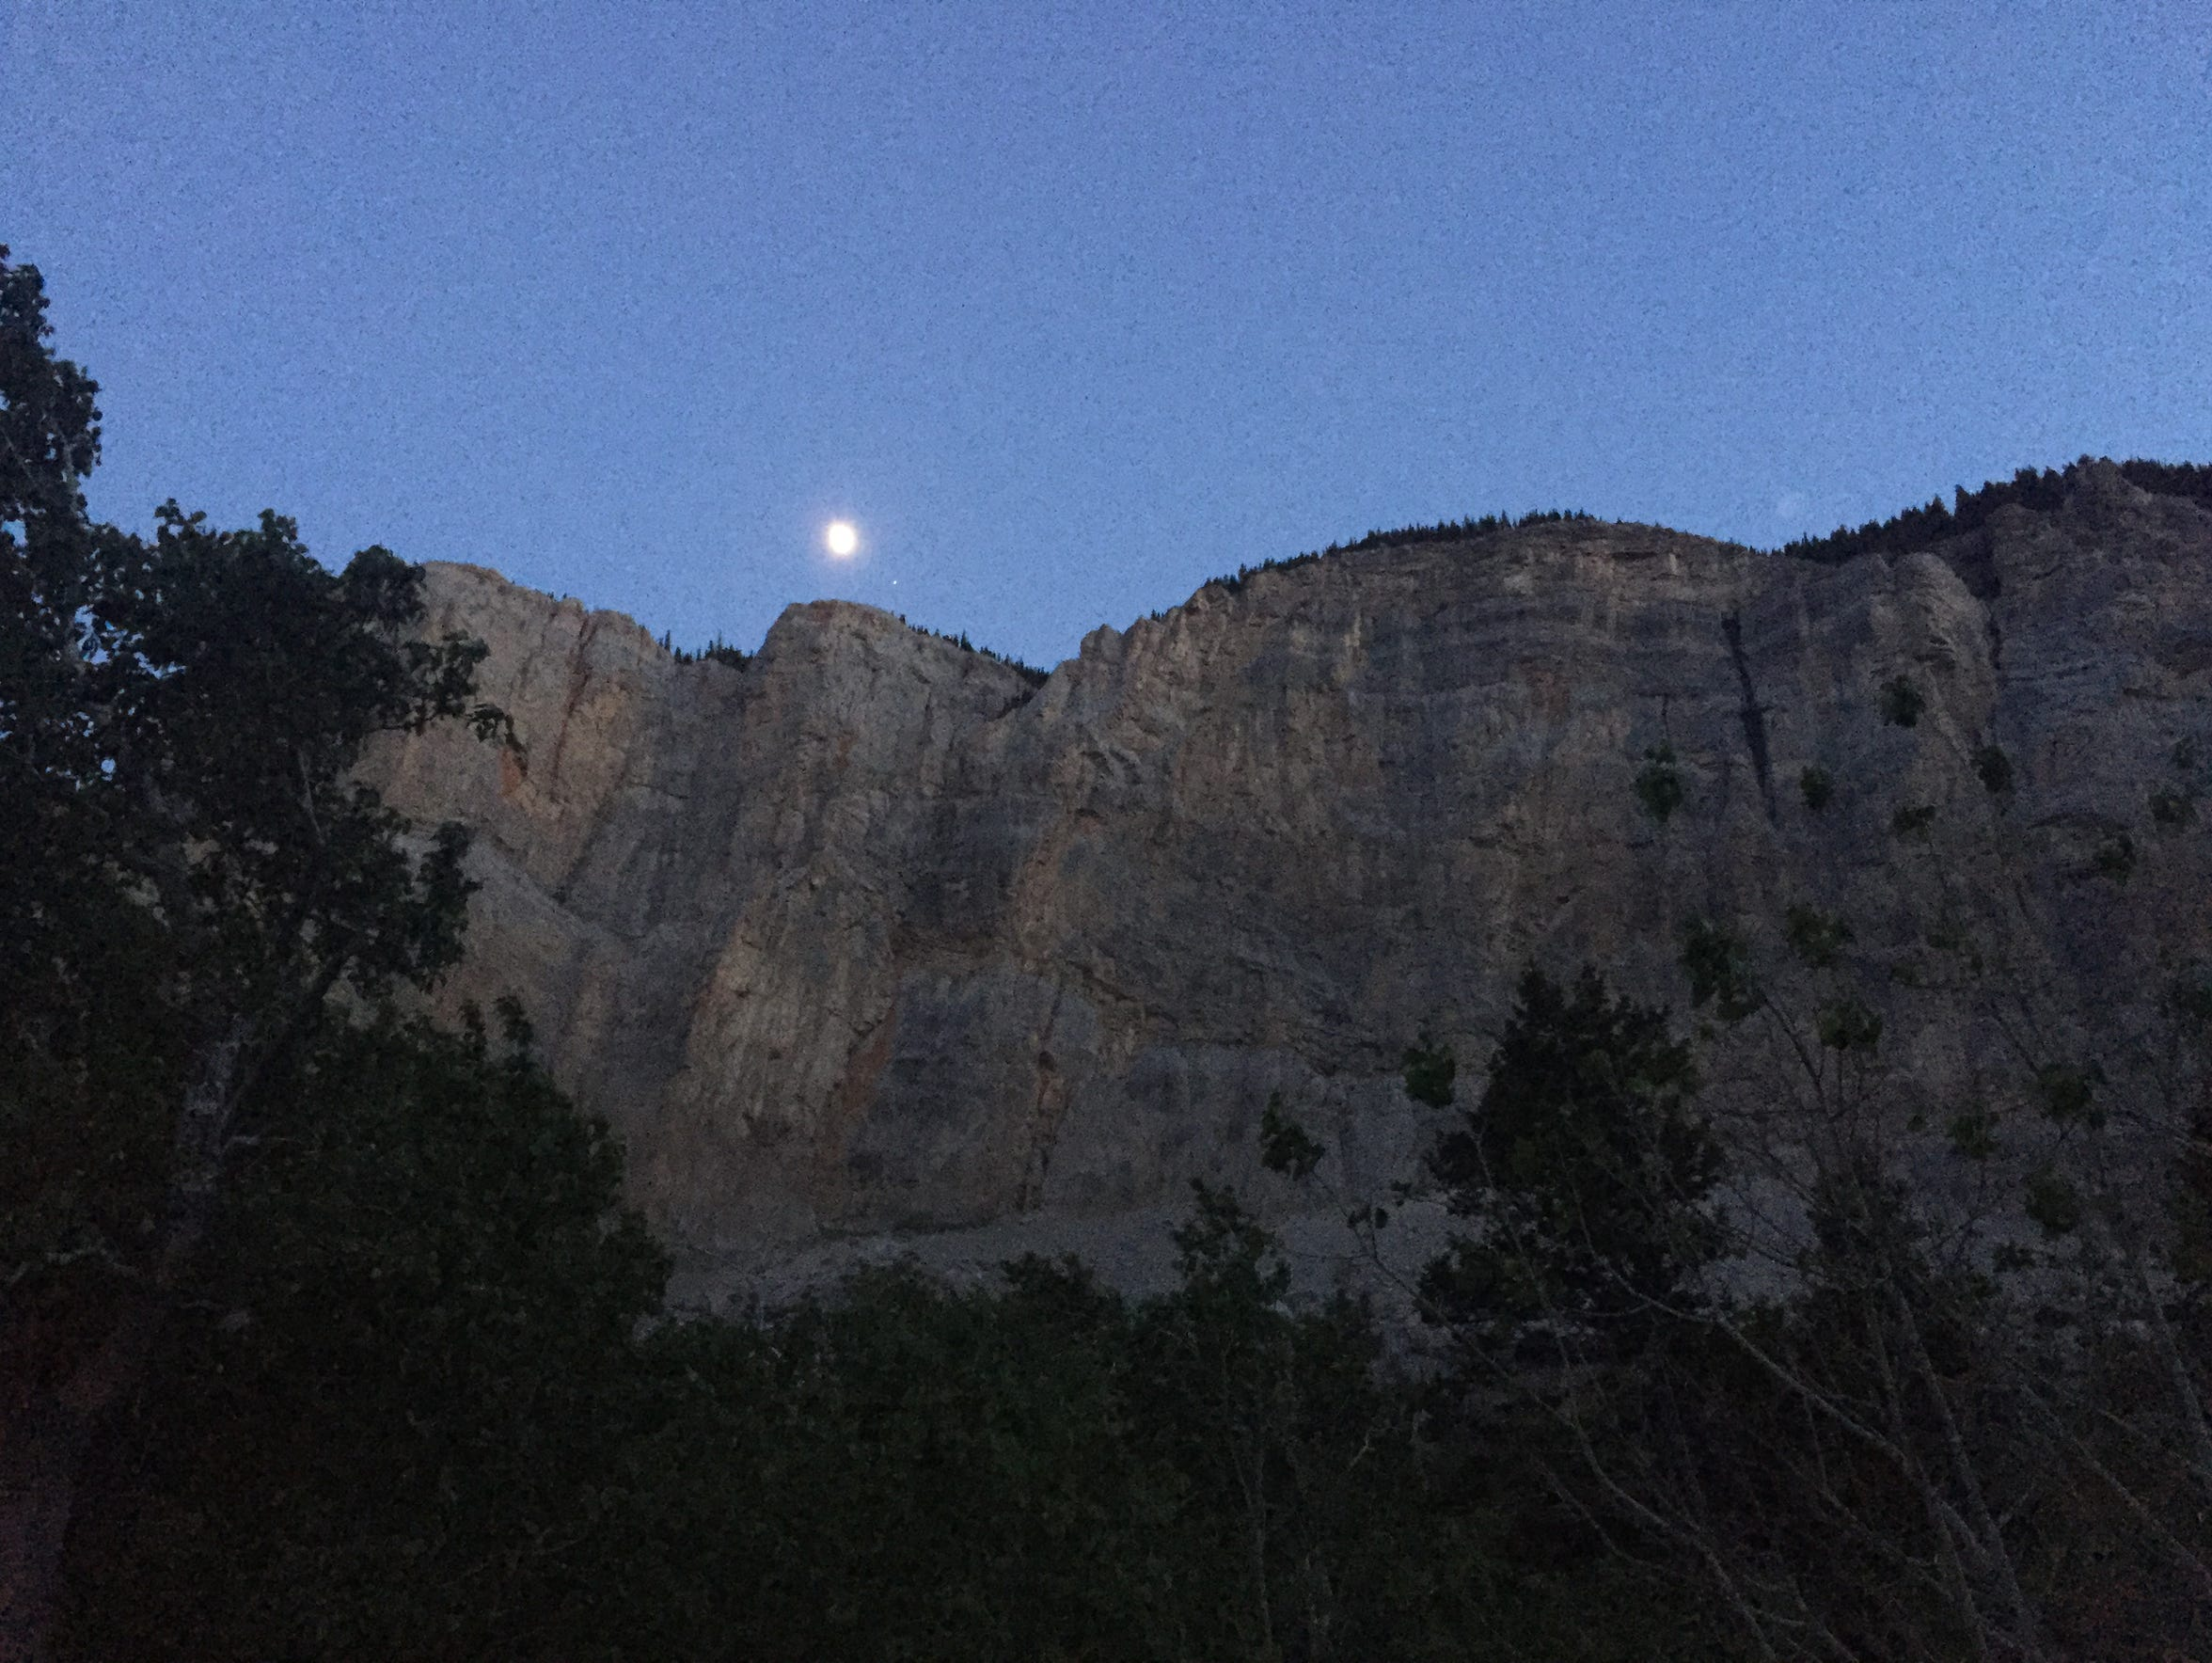 A full moon glows atop the walls of the Blackleaf Canyon.